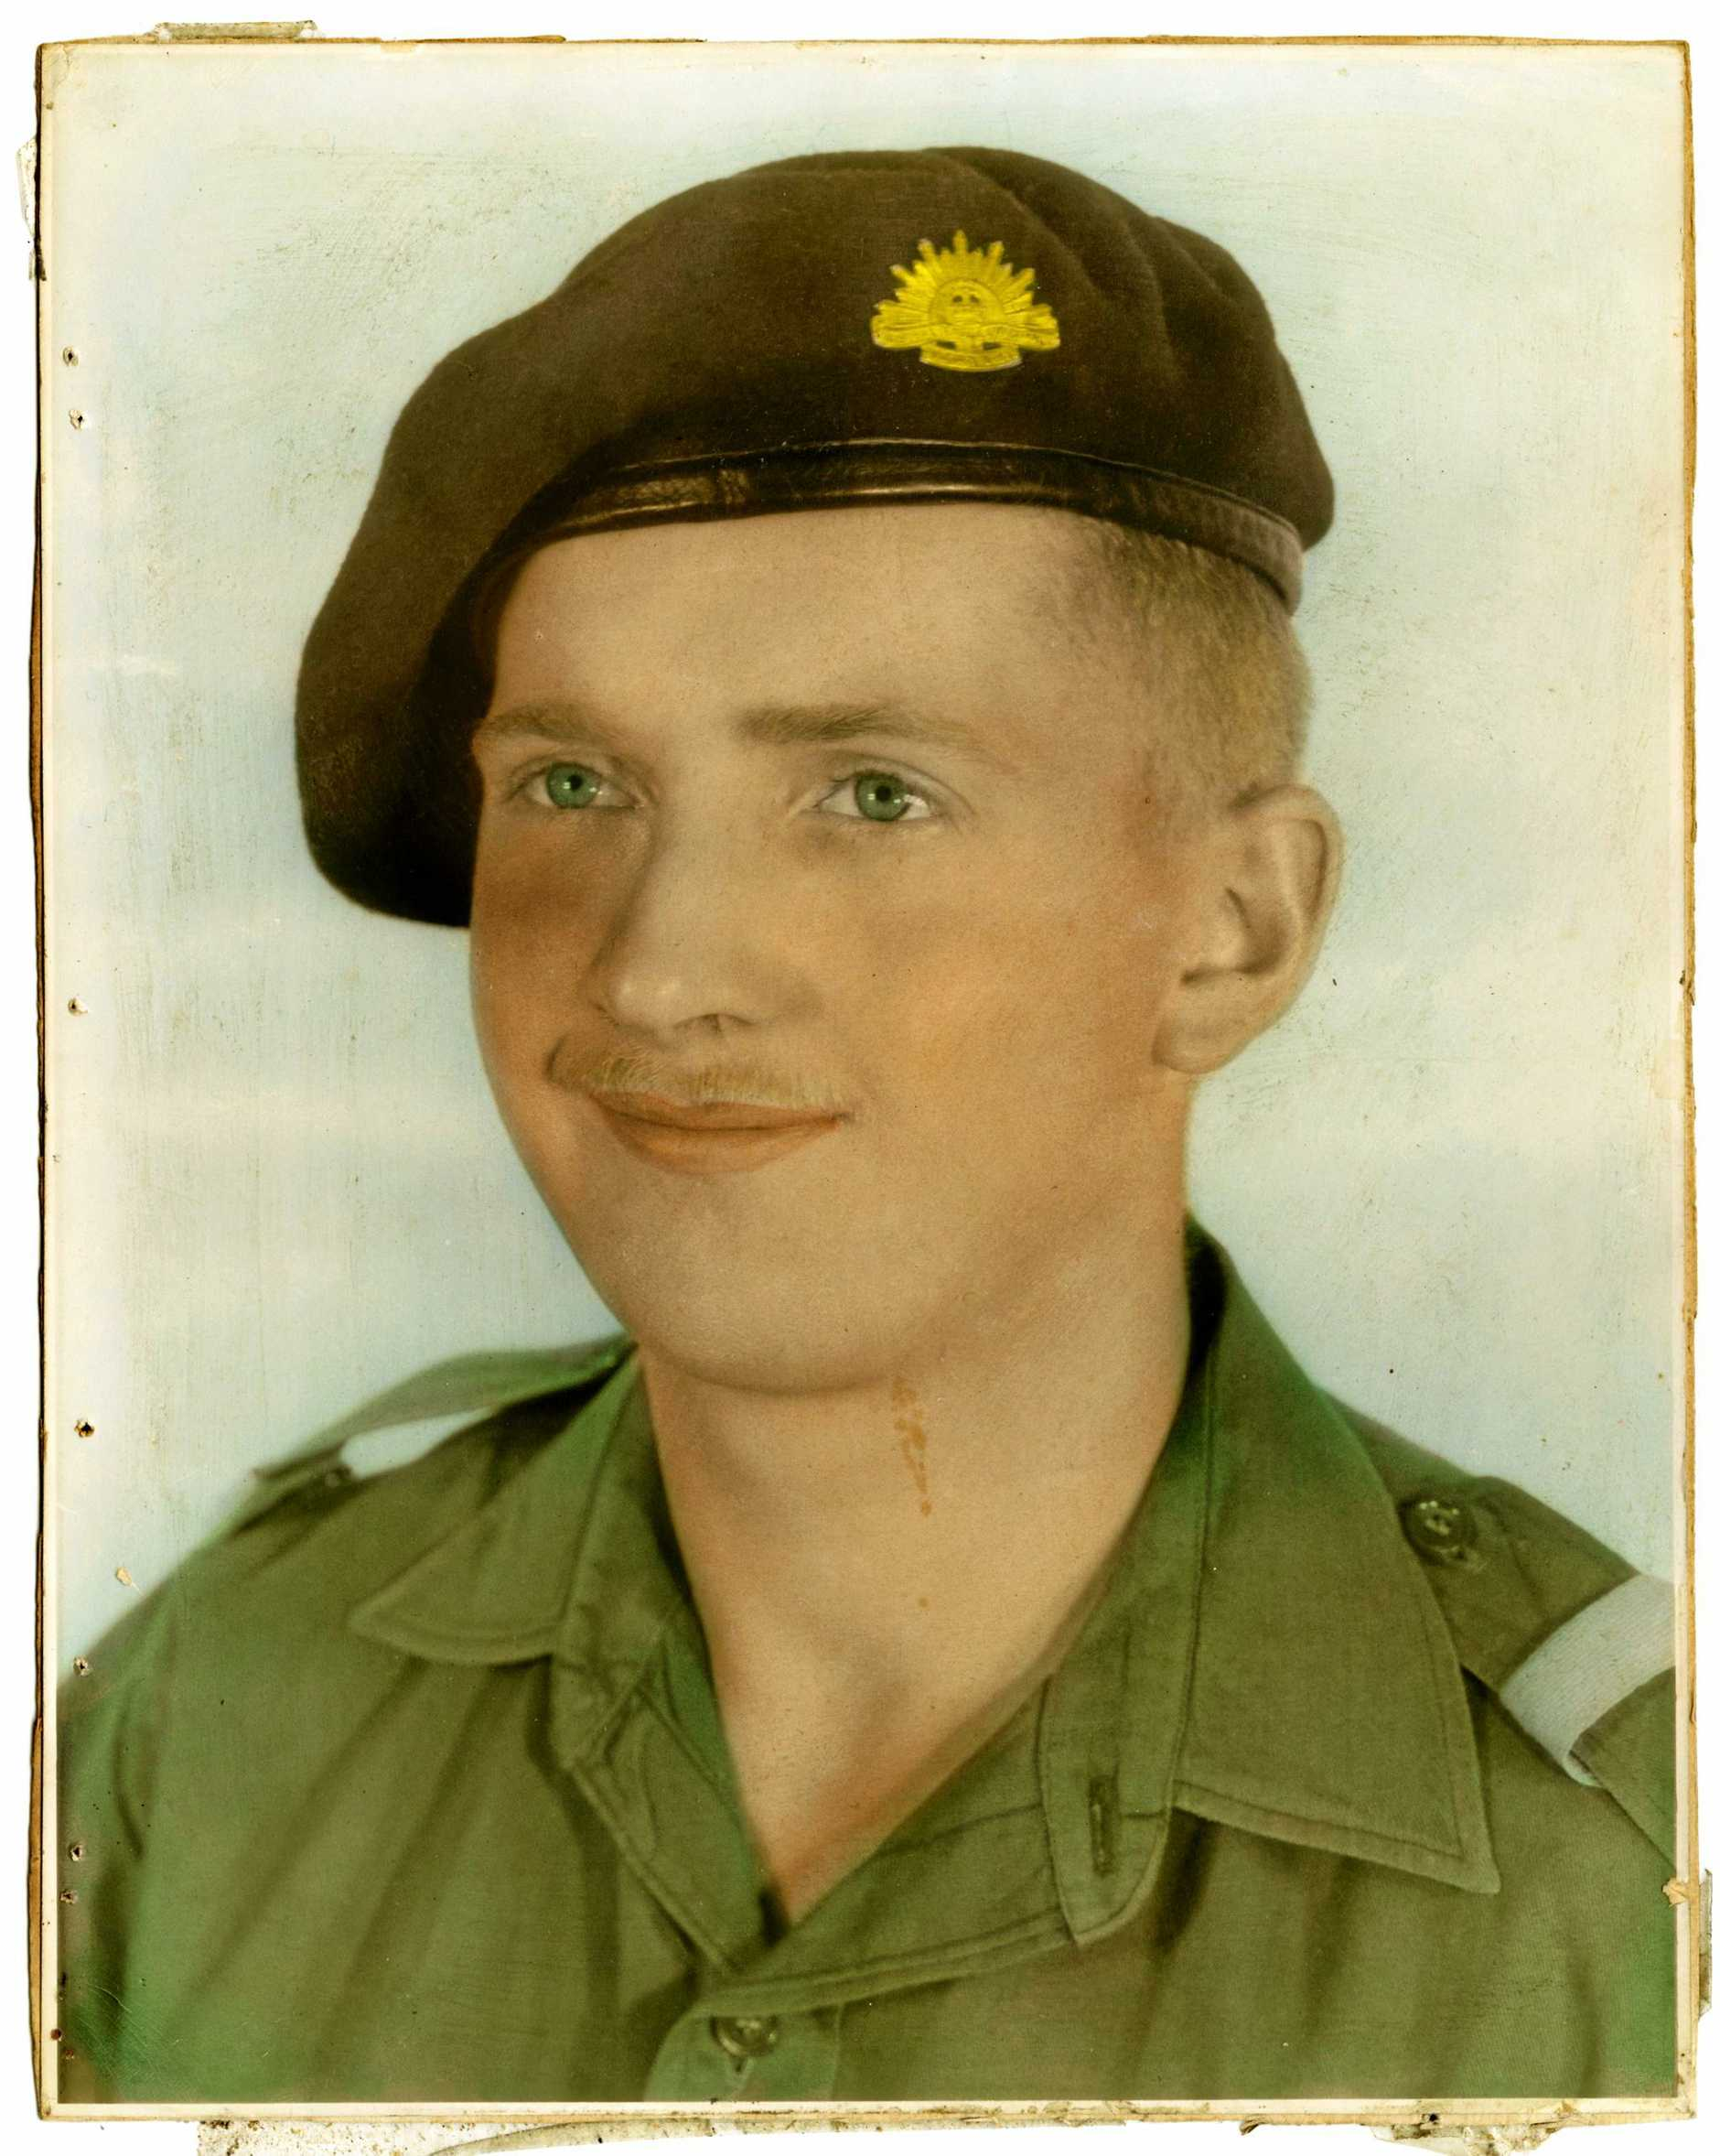 Corporal Phillip 'Doc' Dobson was described by other veterans as a 'hero' after the Battle of Long Tan in August 1966.